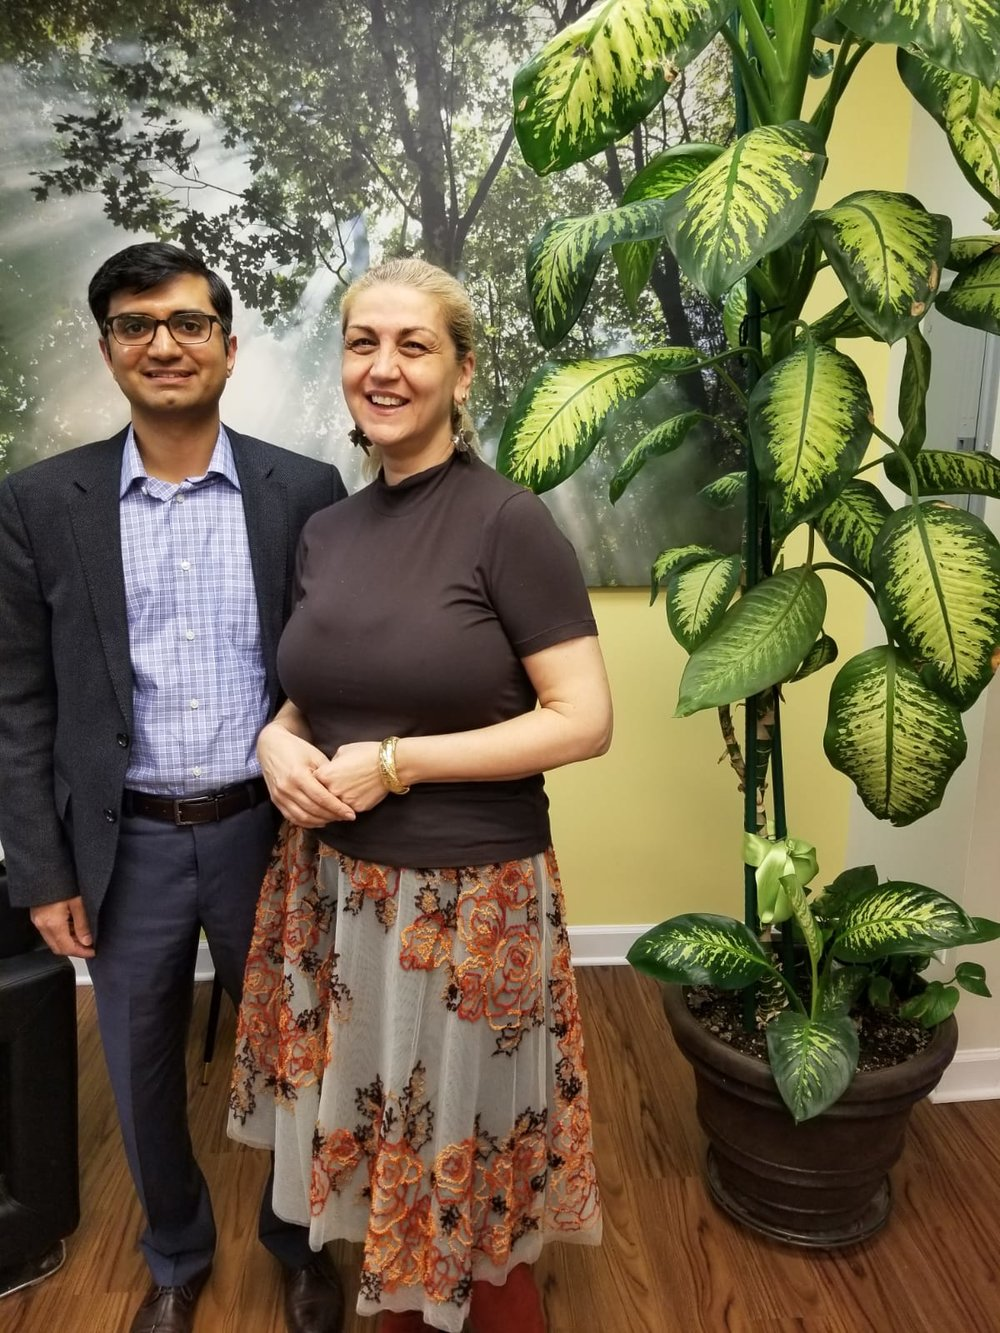 Dr. Rusalina Mincu of Vitallina Preventive & Integrative Care with Dr. Sameer Ahmed of MIMIT Health